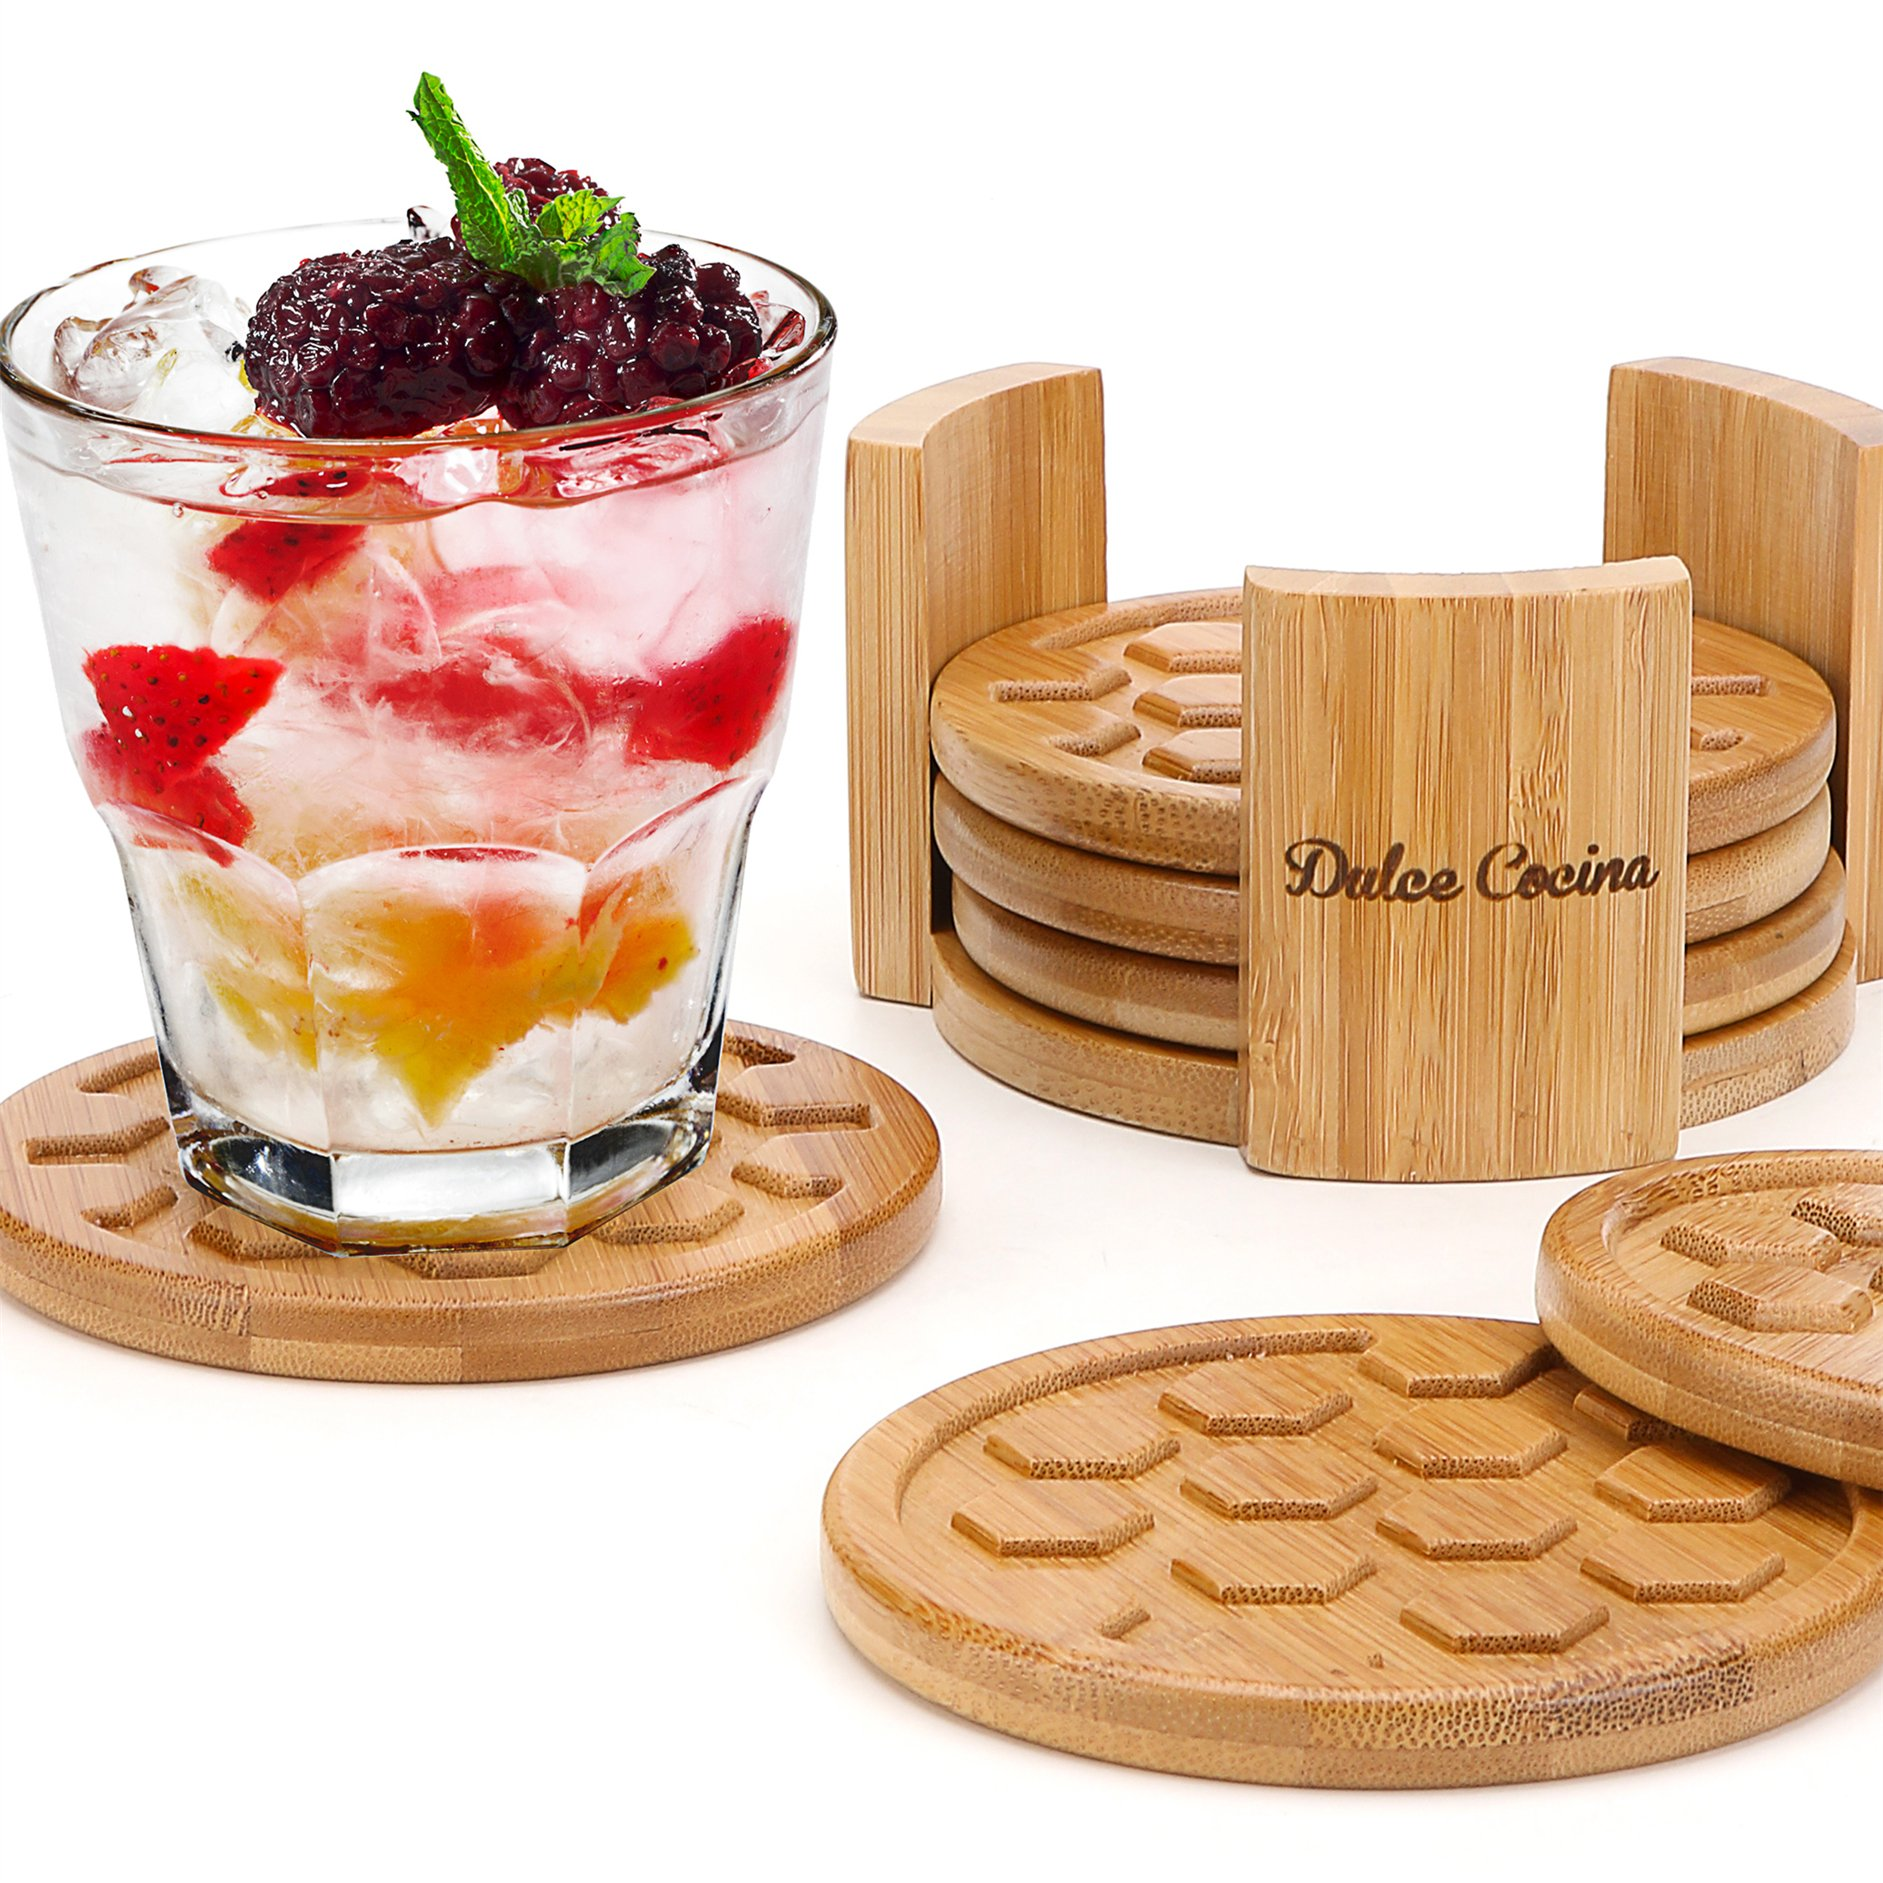 Coasters For Drinks 6 Pack - Round Bamboo Cup Mats Set of 6 Coaster In Elegant Holder Stand - Grooved & Deep Tray Trapping Spill and Sweat To Protect Furniture, 4.3'' Large Size, Safe to All Surfaces